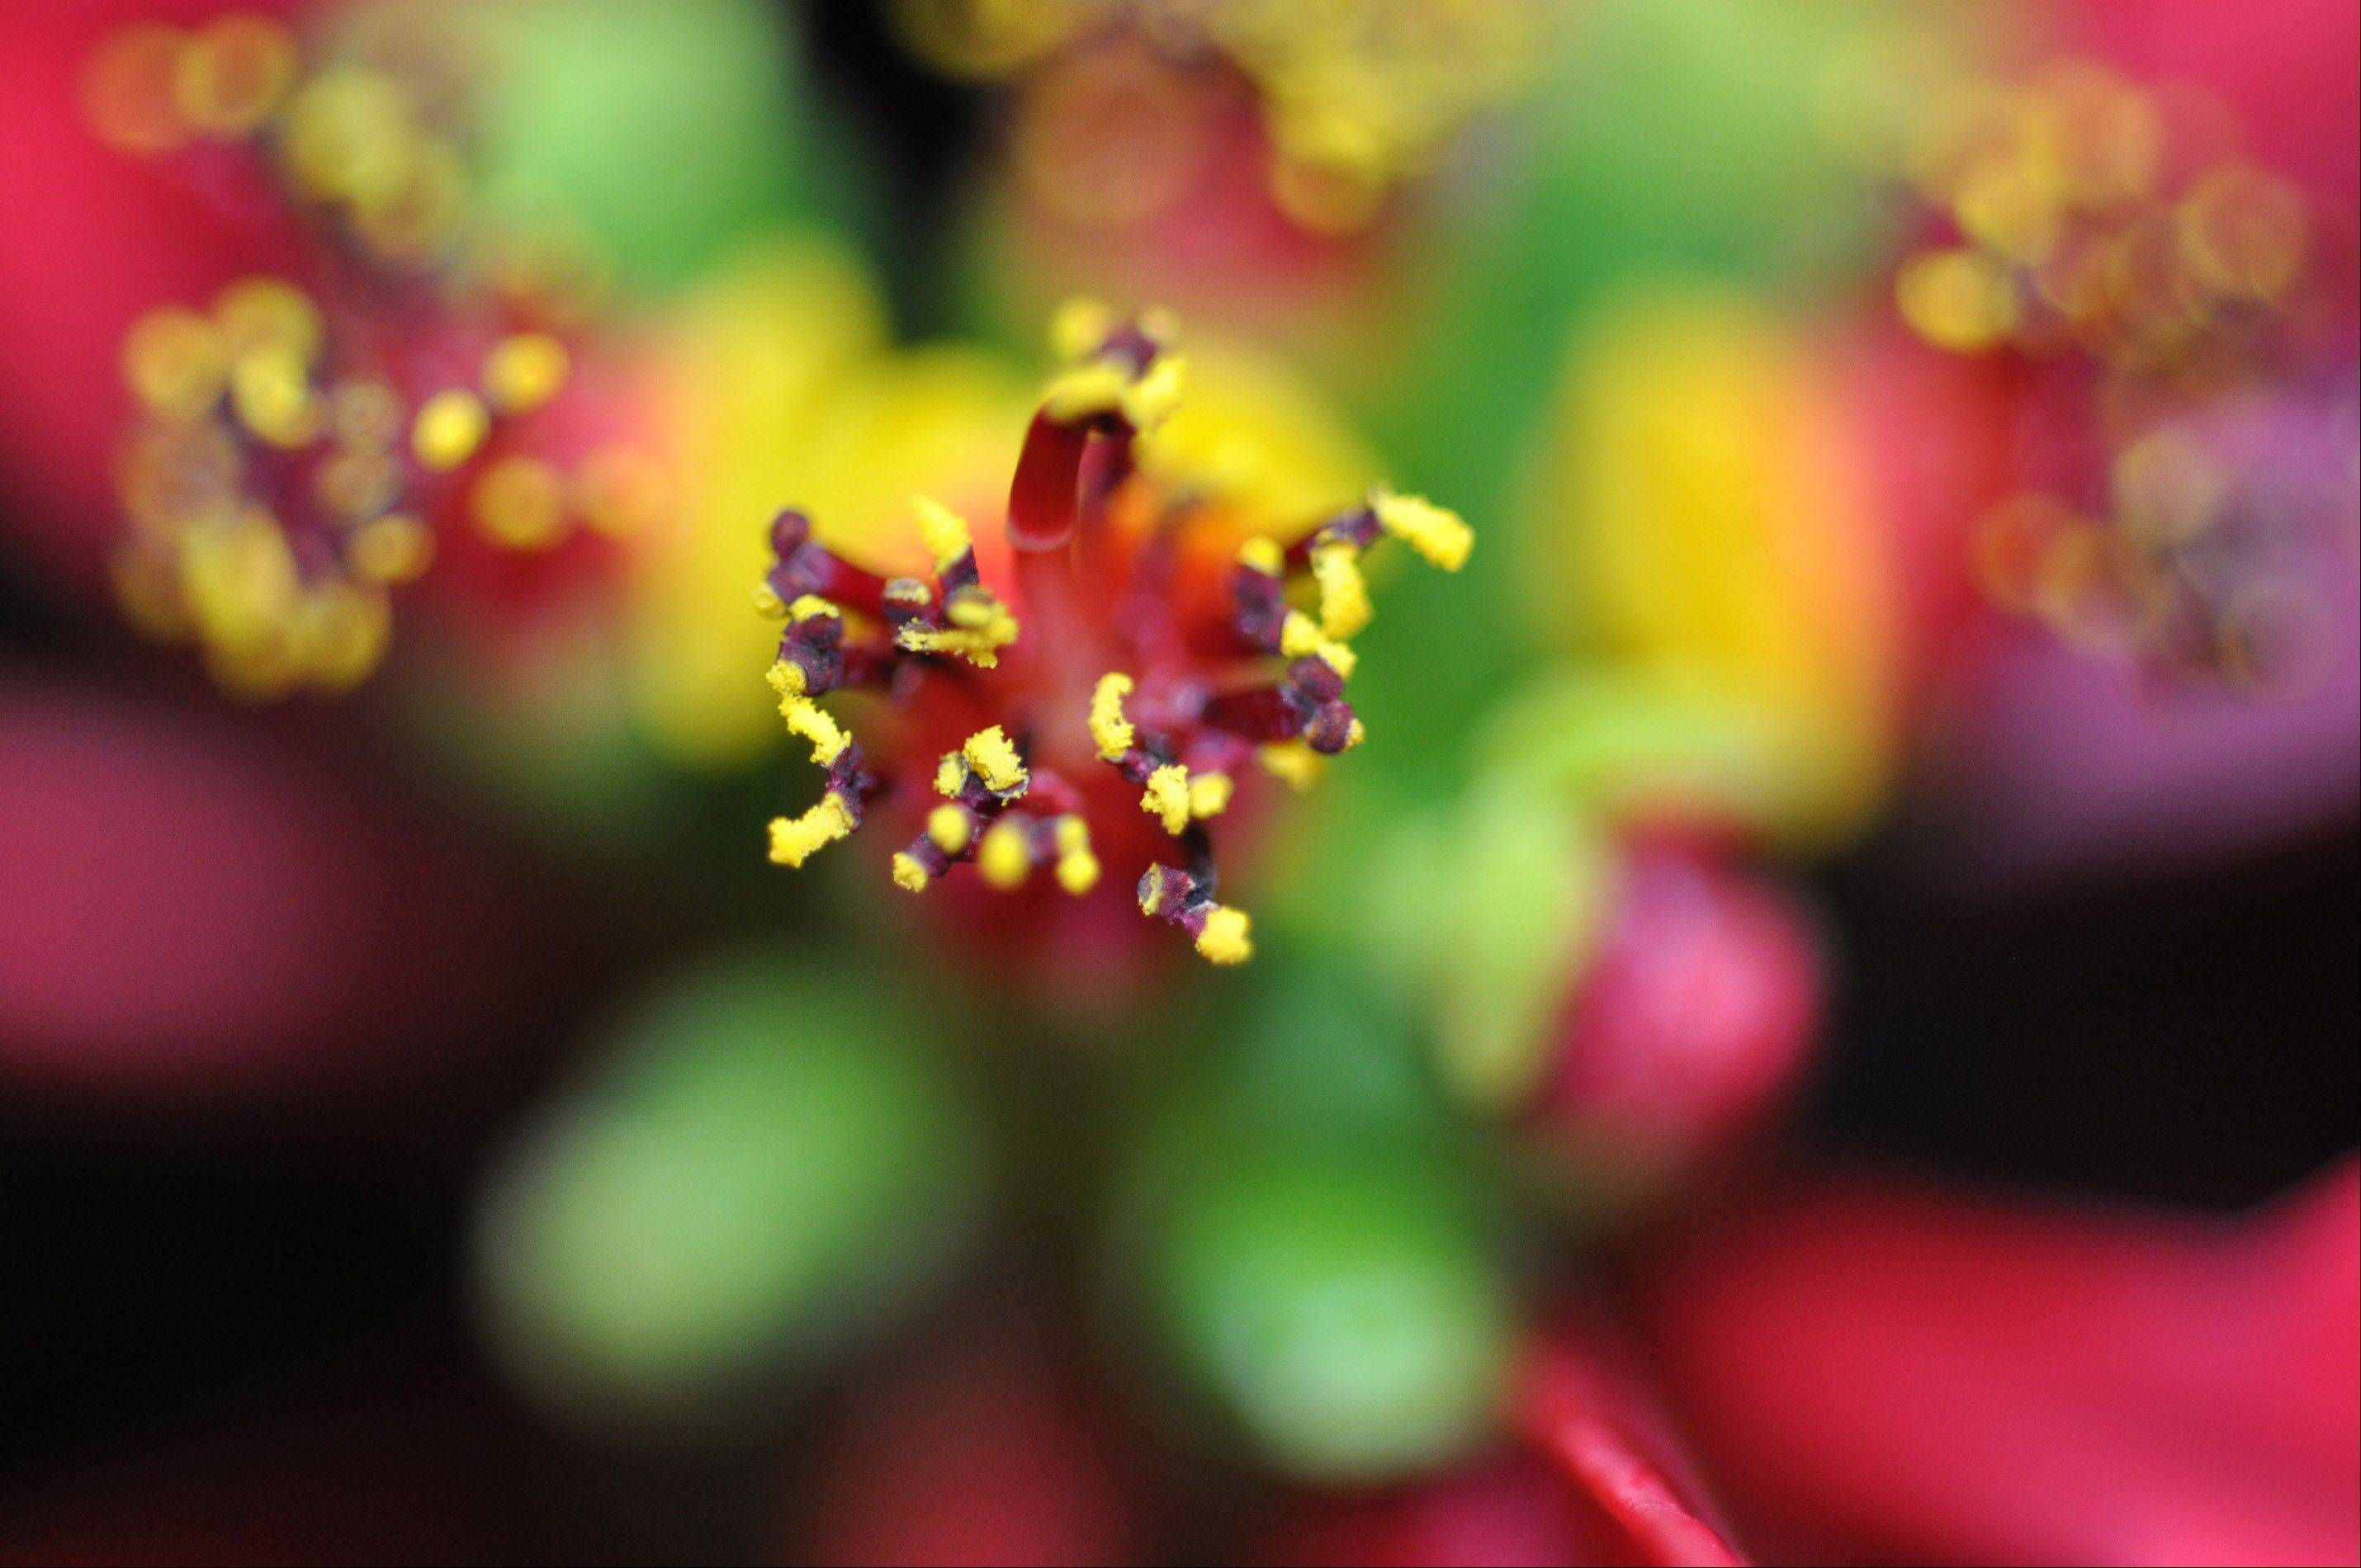 This is a poinsettia as seen through a macro lens.